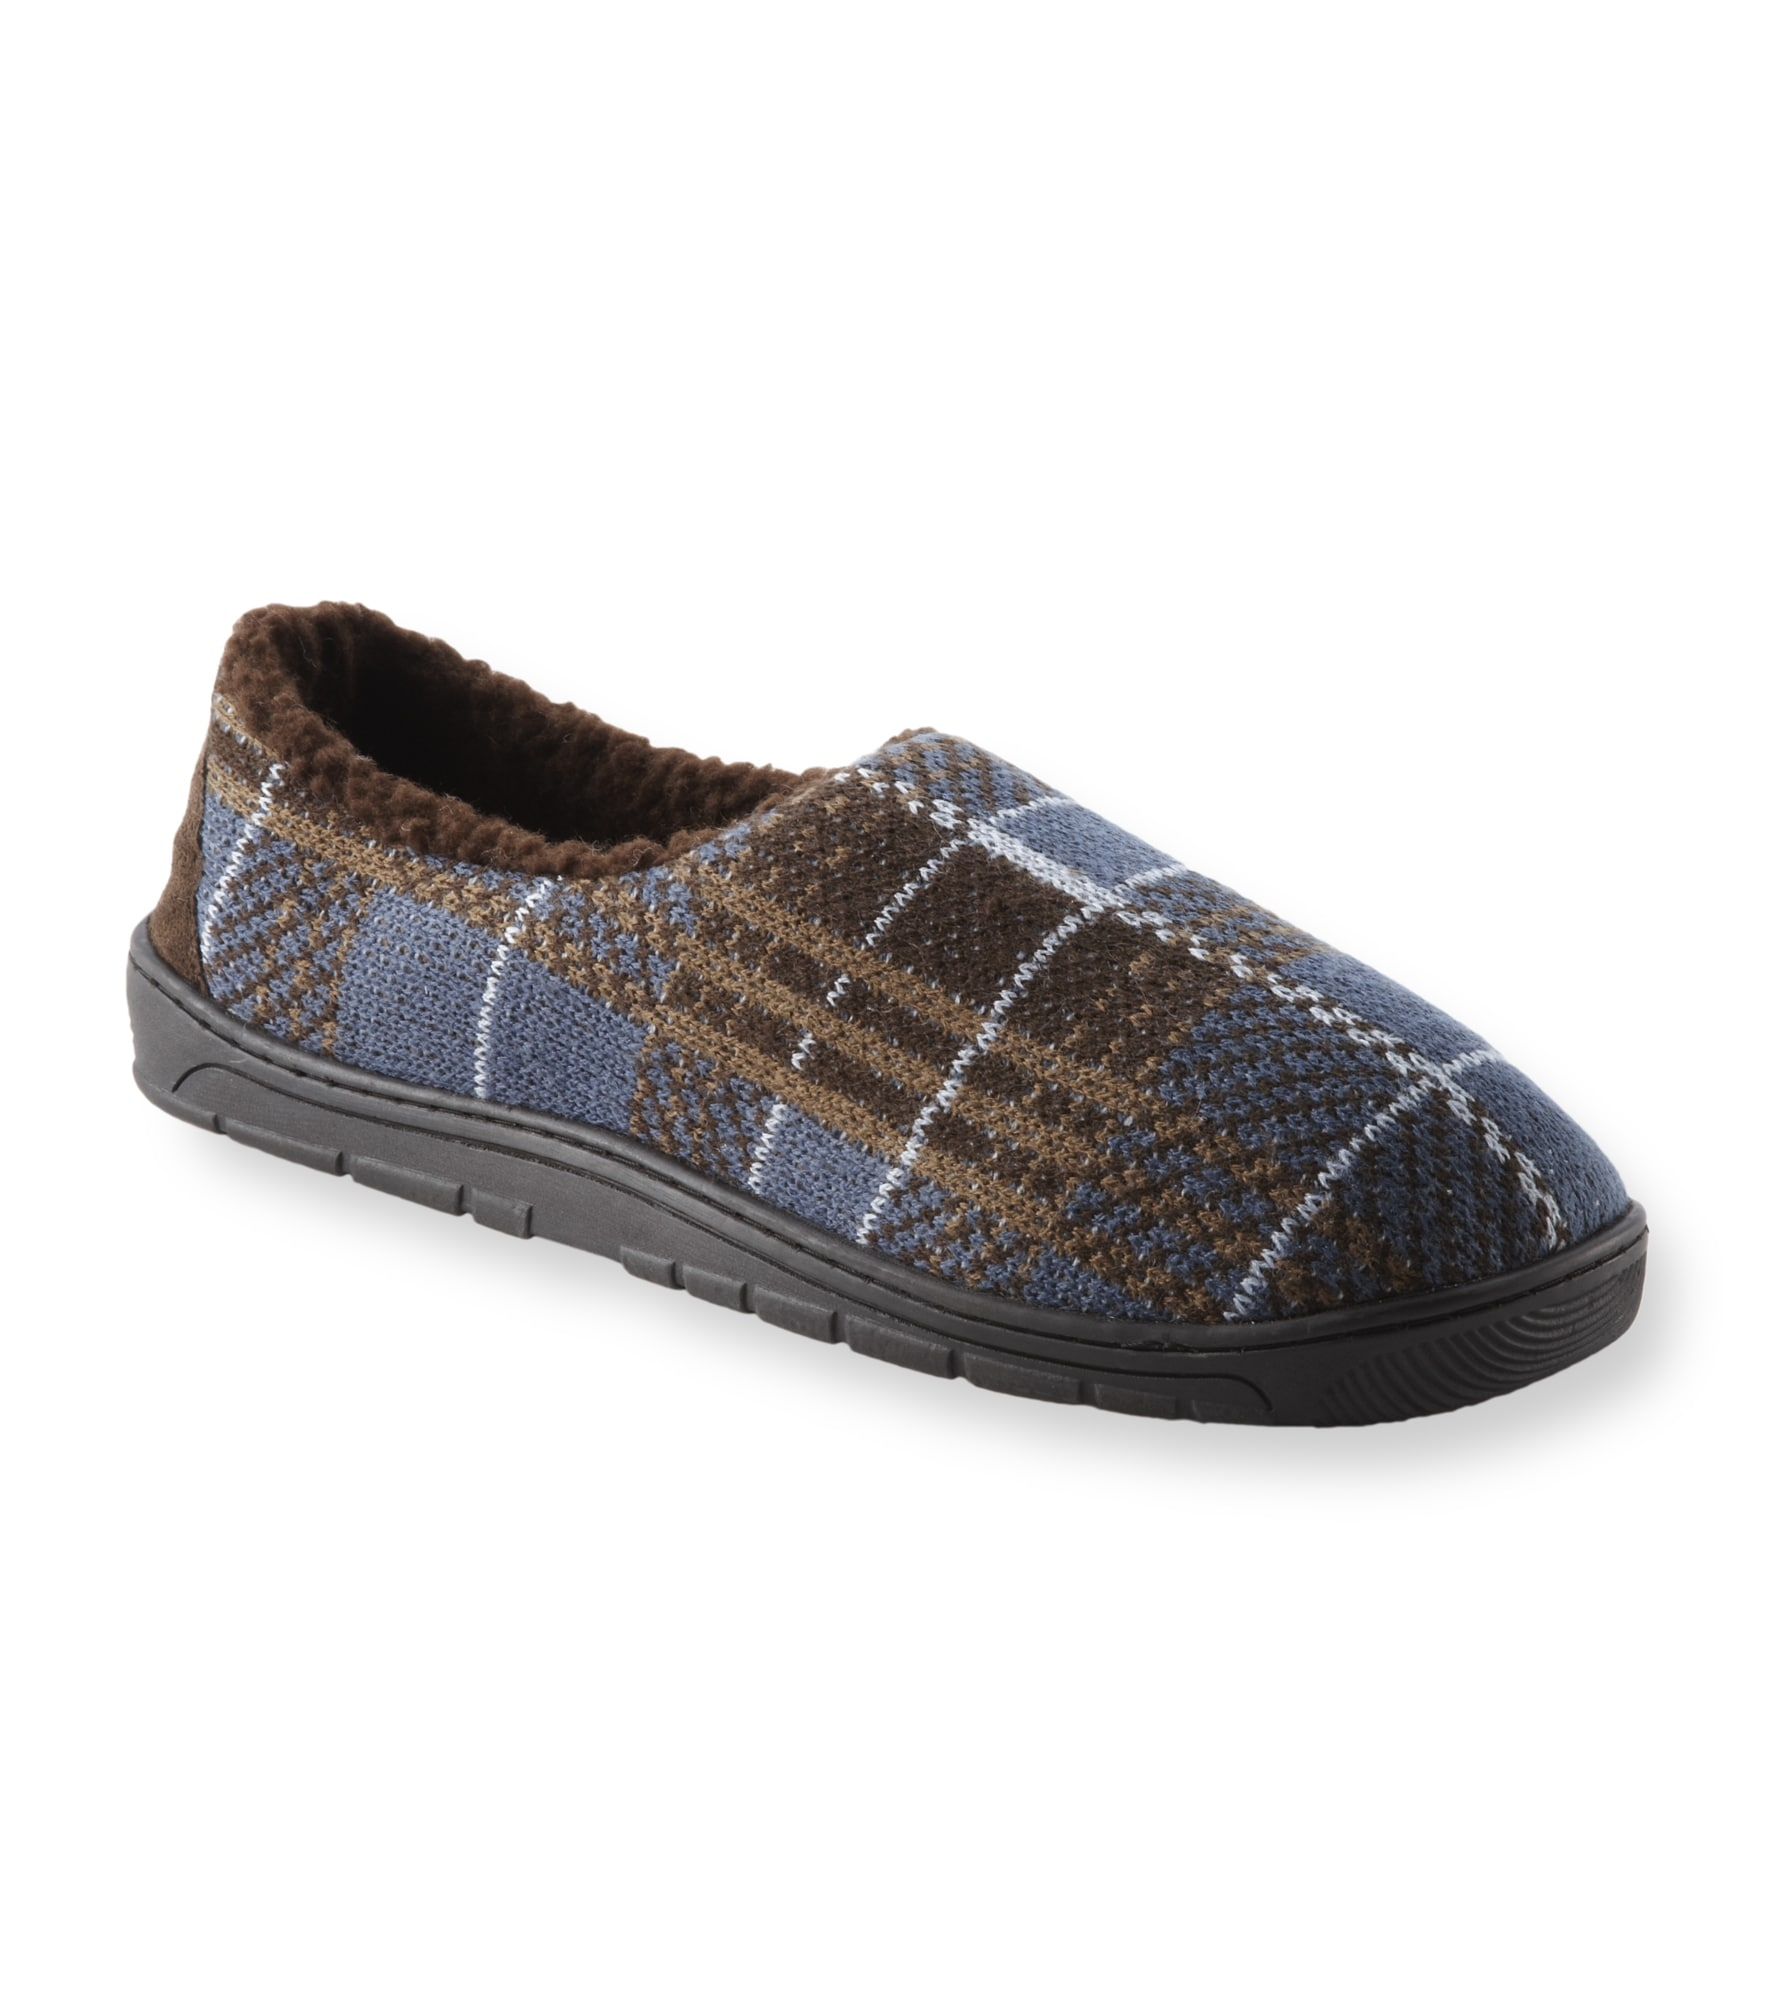 Muk Luks Men's 'Tom' Brown Plaid Knit Foot Slippers